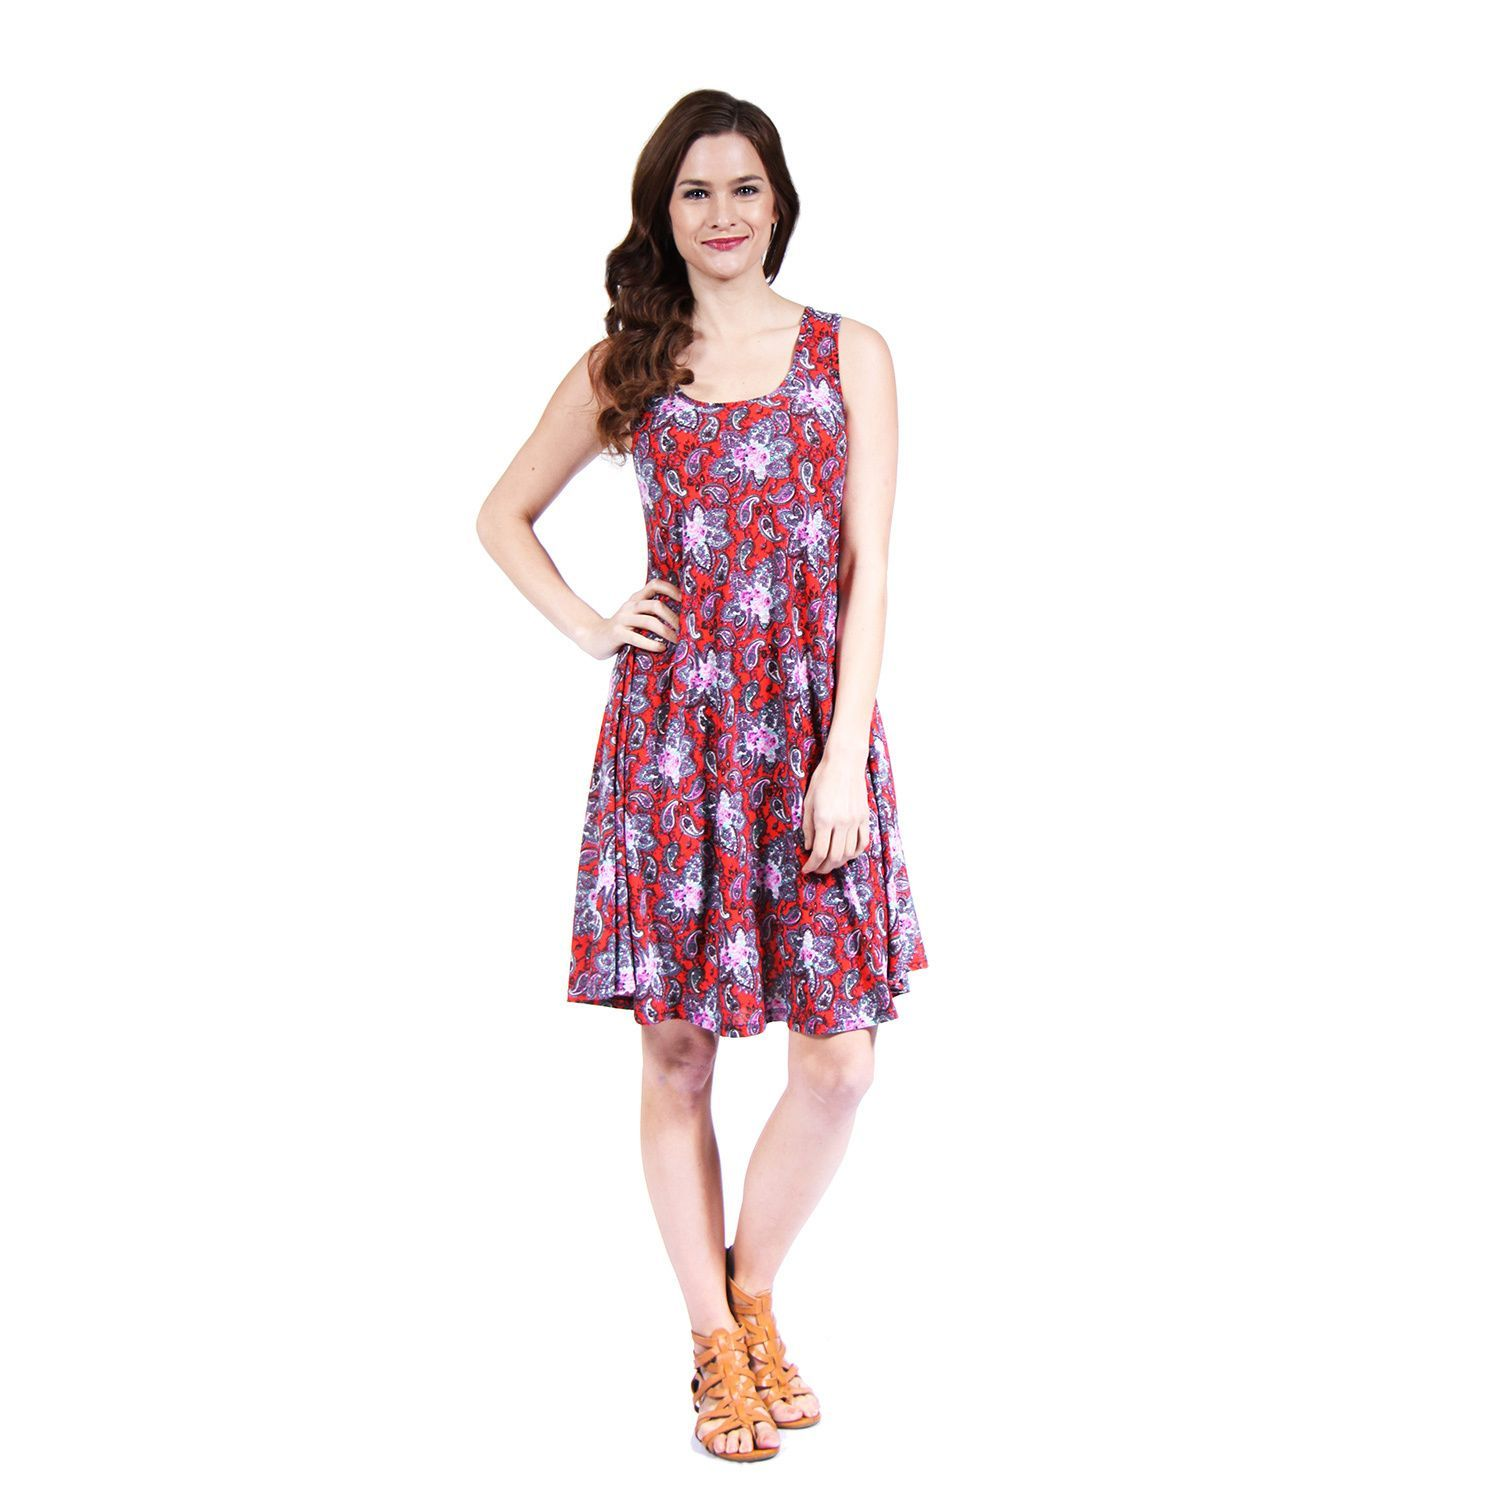 Slight stretch in construction and sleeveless style finish this pullover dress with a chic, comfortable fit. The abstract paisley design of complimentary reds and pinks are eye-catching, and are perfect for any occasion.